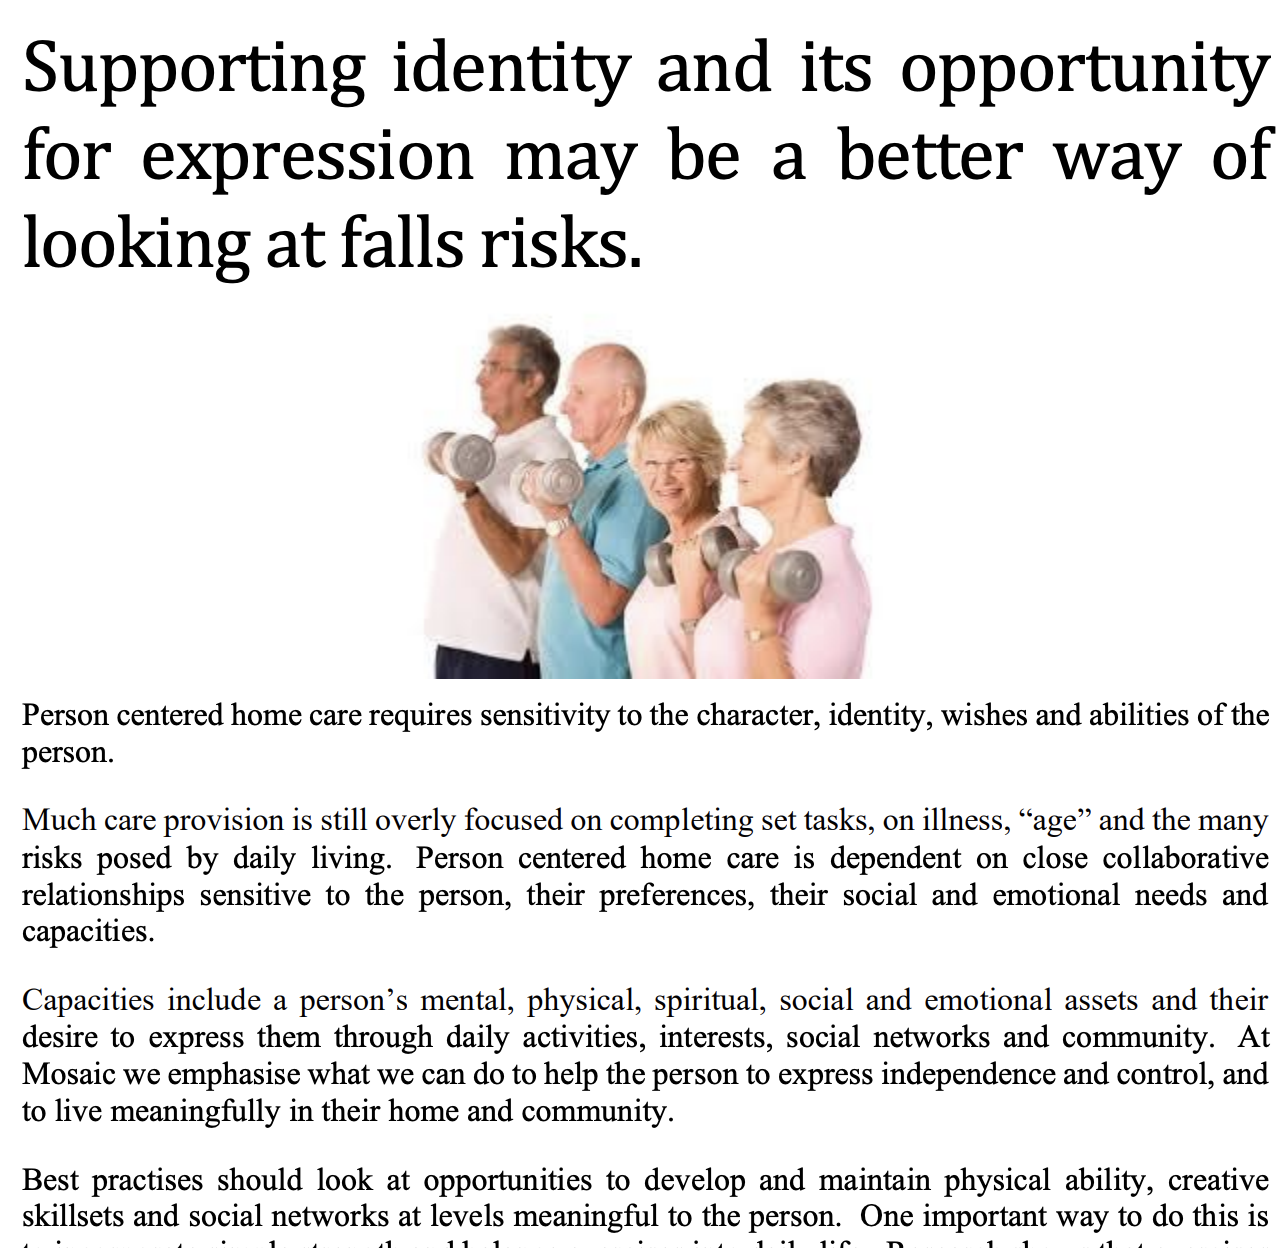 Supporting identity and its opportunity for expression may be a better way of looking at falls risks.